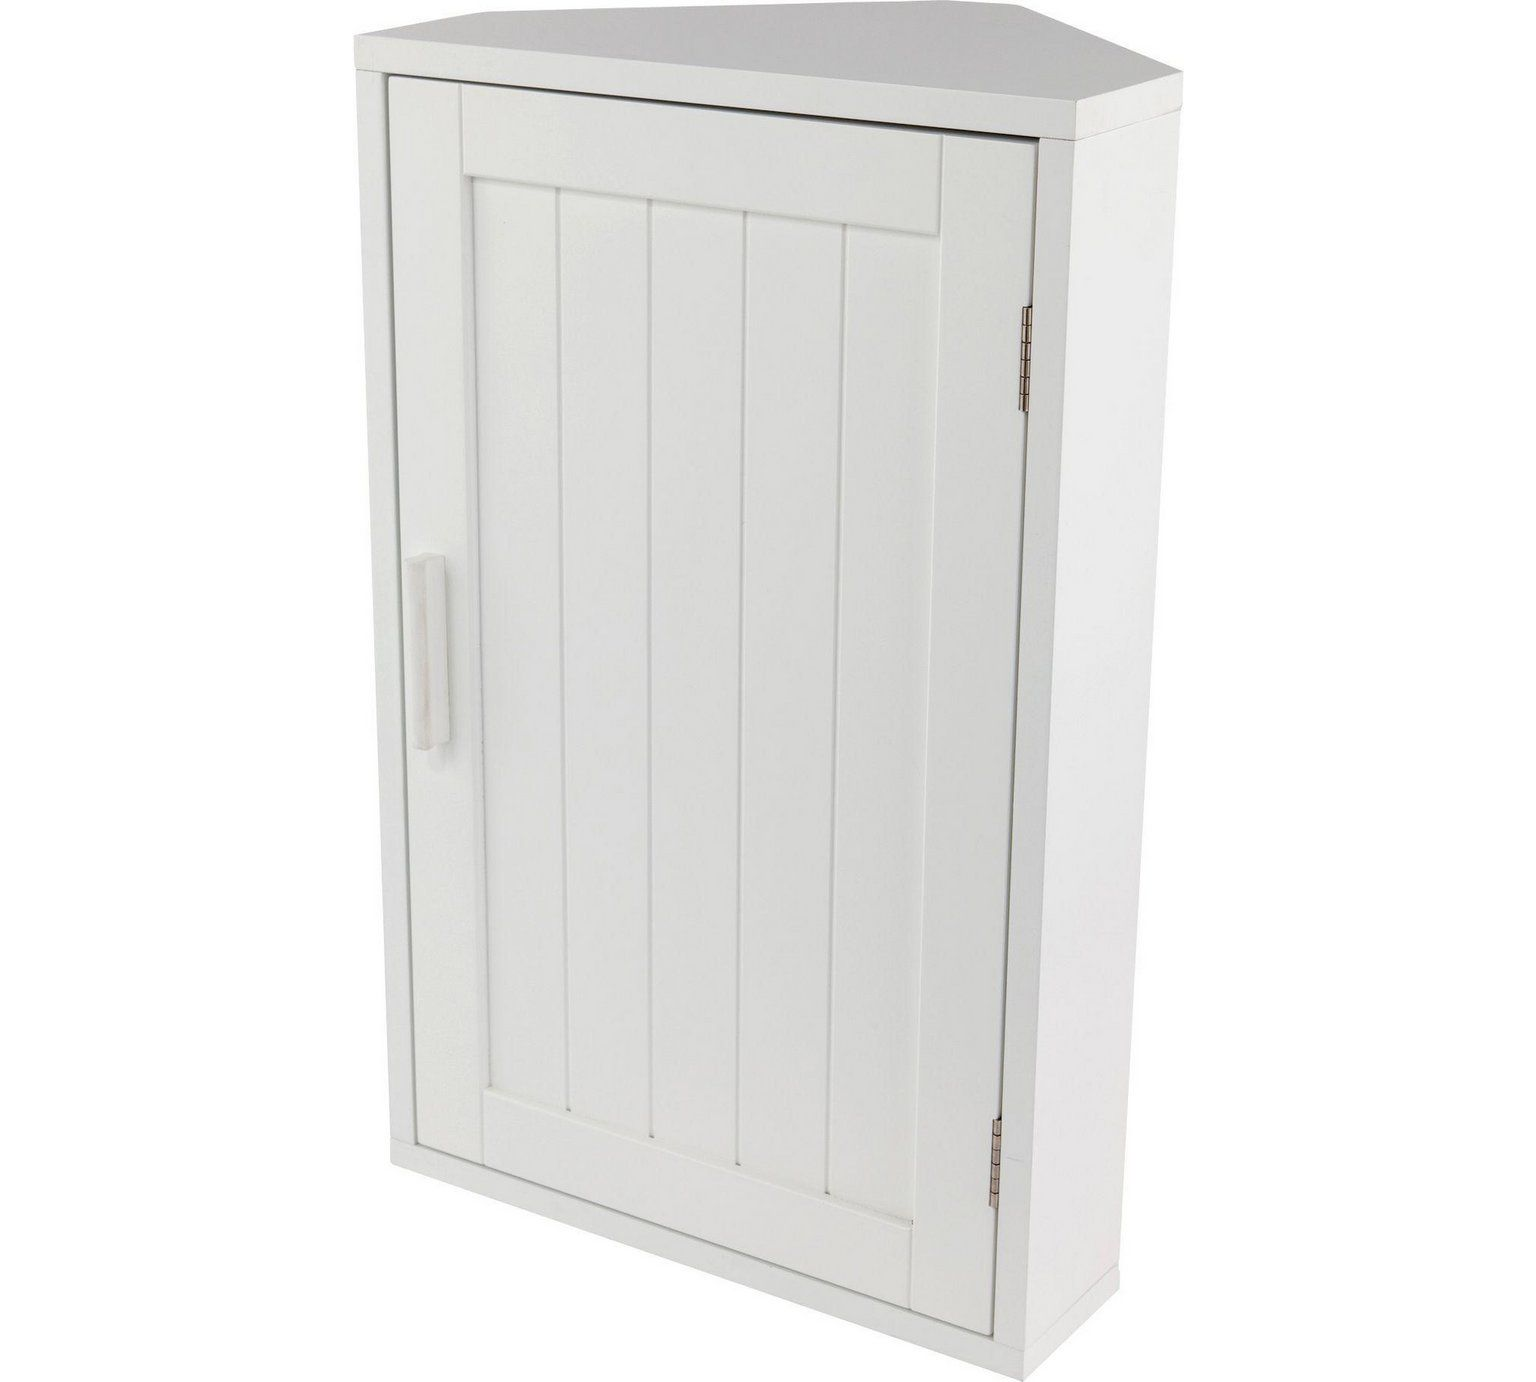 Buy HOME Wooden Corner Bathroom Cabinet - White at Argos.co.uk ...